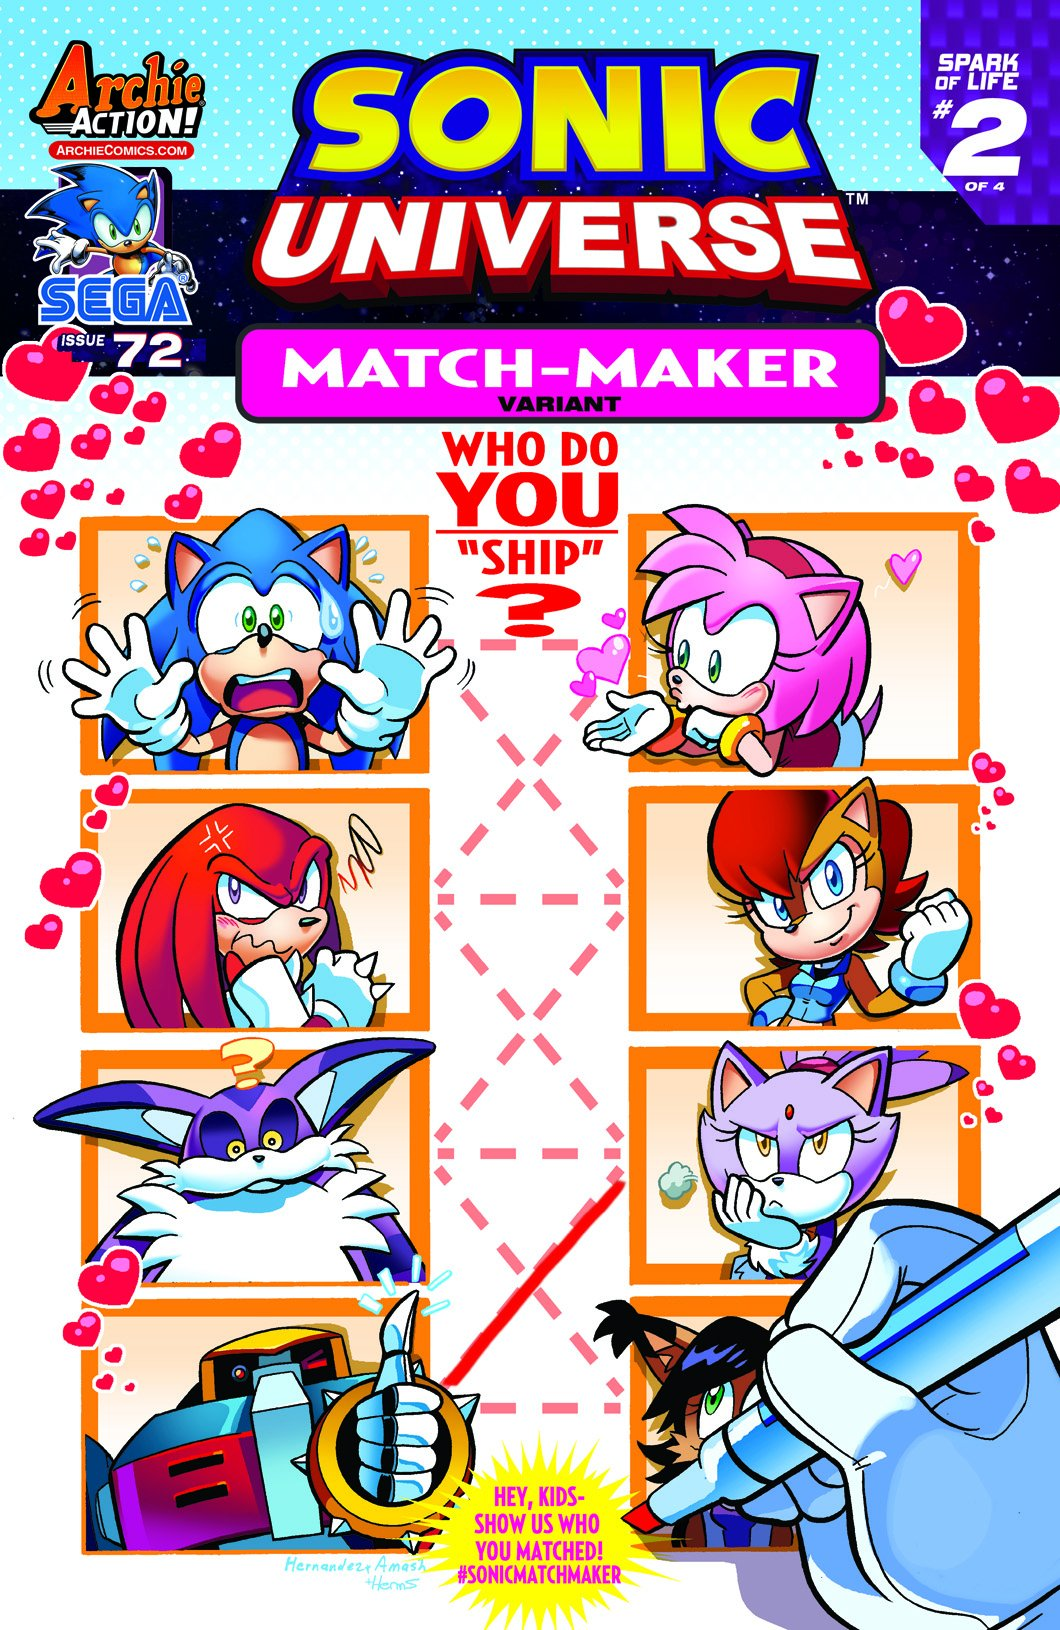 Sonic Universe 072 (March 2015) (Match-Maker variant)